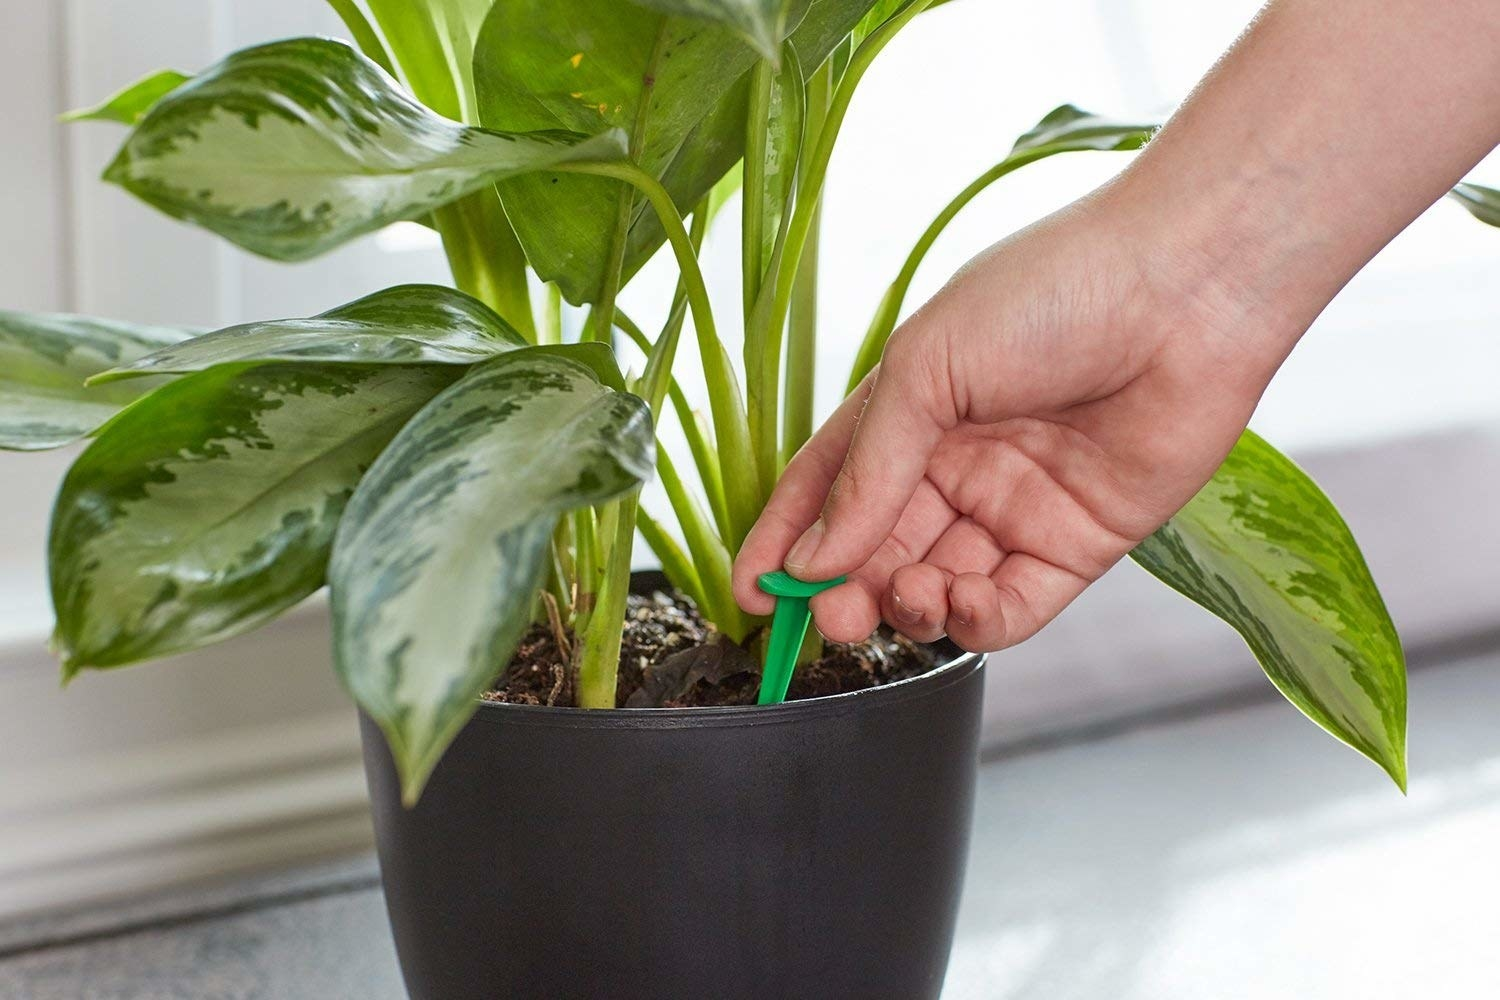 A hand placing the food spikes into a plant